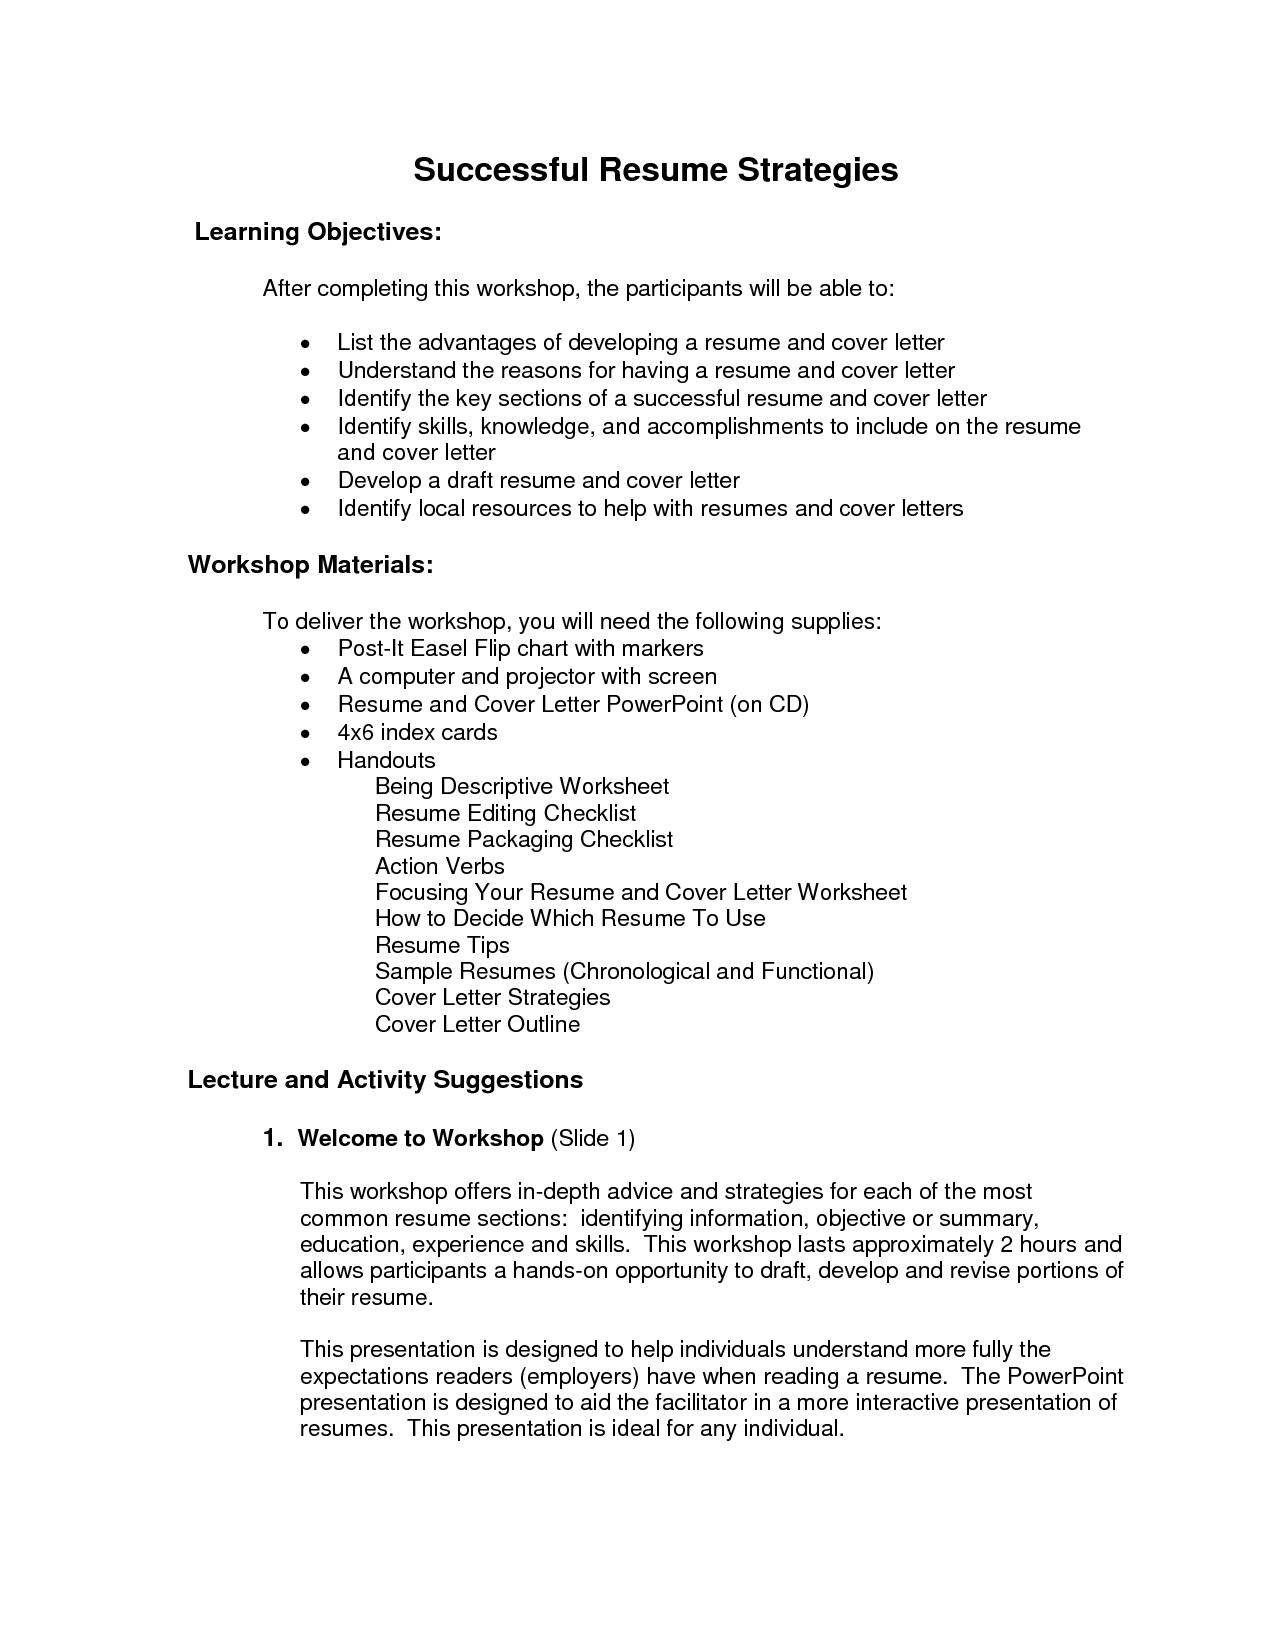 Objectives In Resumes Fashion Stylist Resume Objective Examples  Httpwww